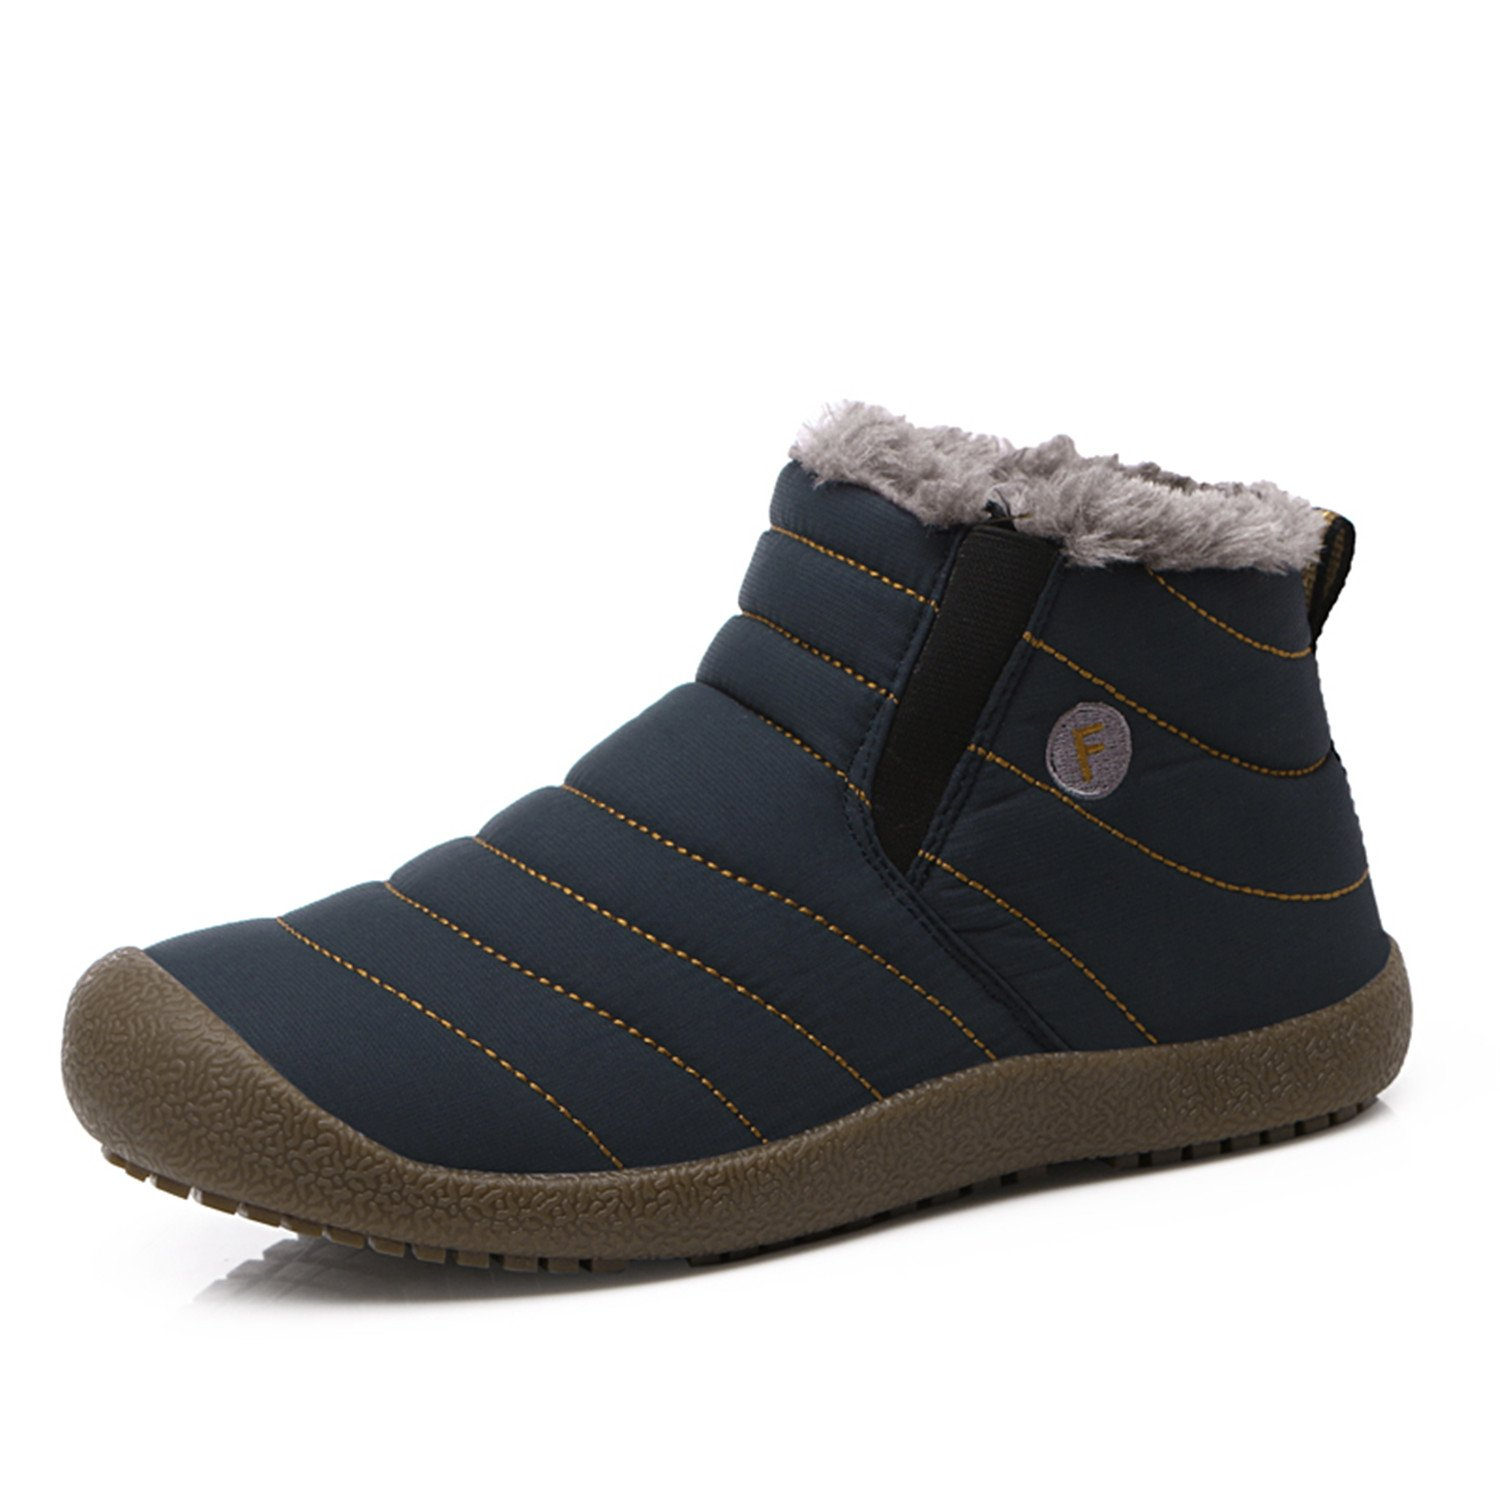 L-RUN Snow Short Boots for Women Waterproof Ankle Daily Work Booties Blue 8.5 M US